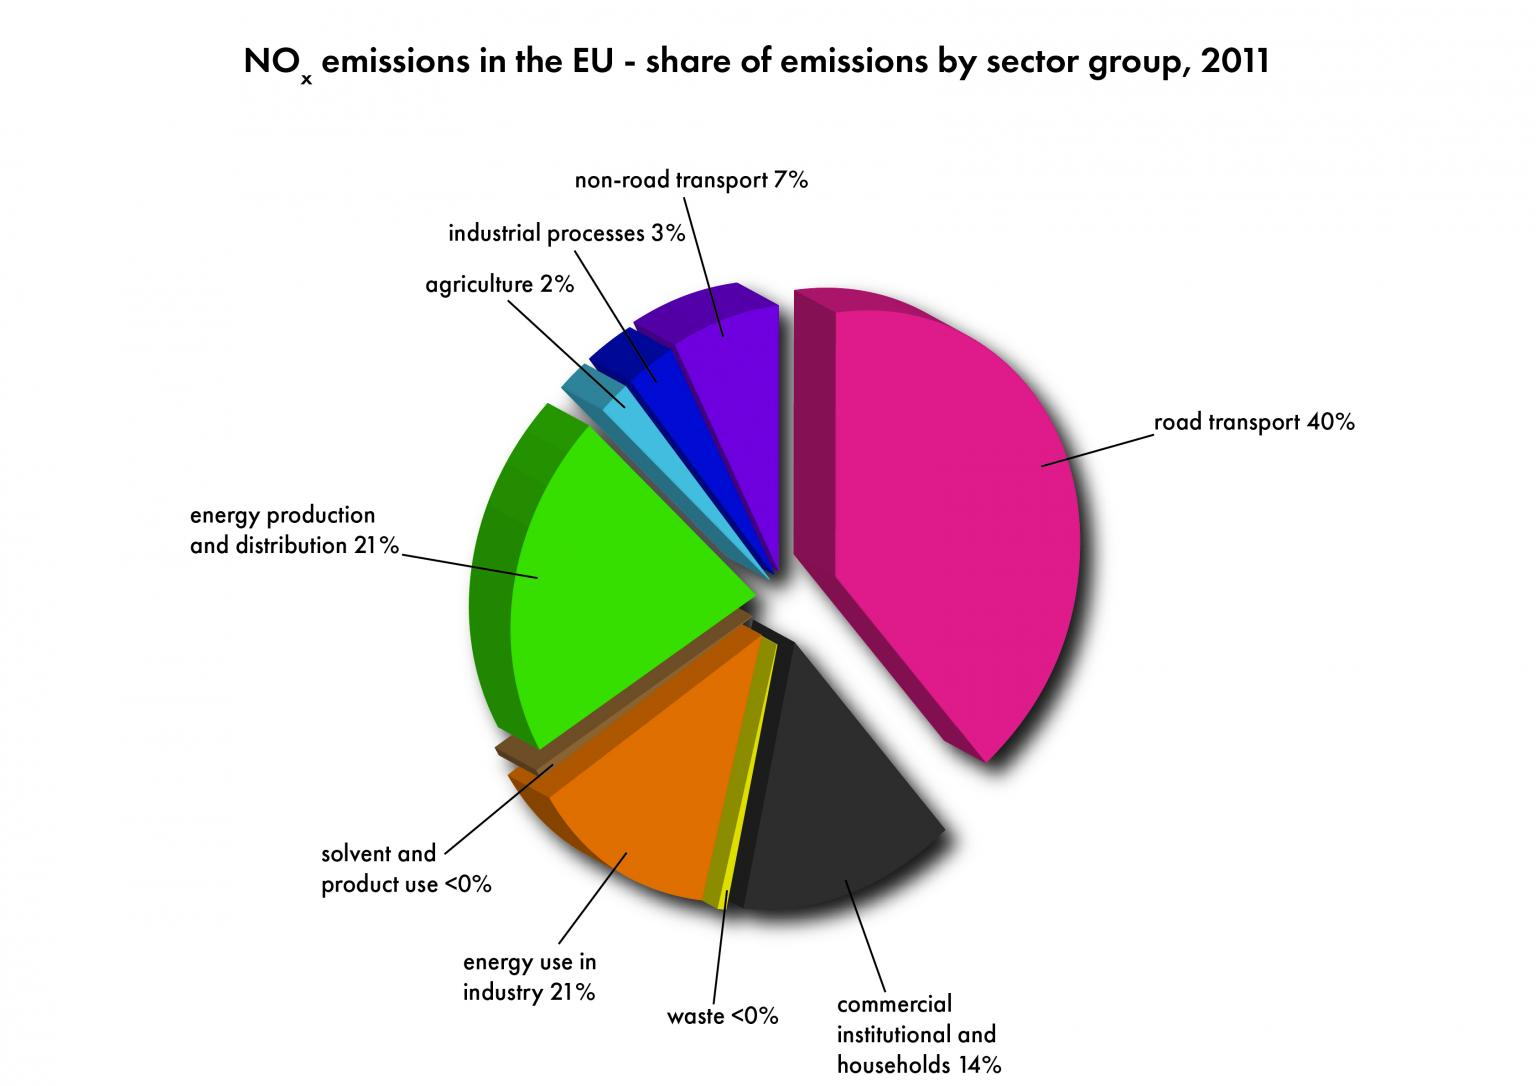 European Union emission inventory report 1990–2011 under the UNECE Convention on Long-range Transboundary Air Pollution (LRTAP)